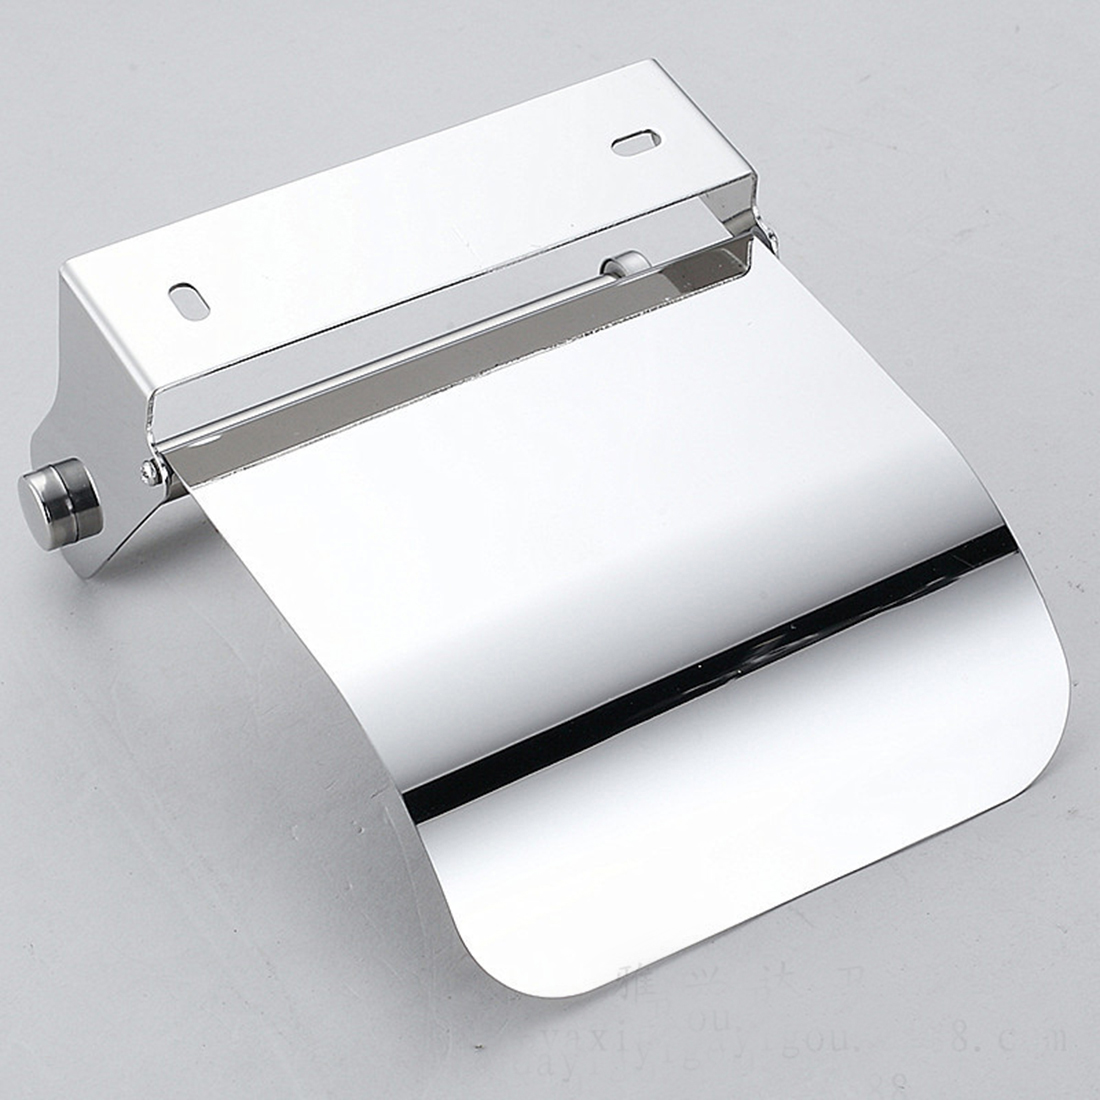 Stainless Steel Toilet Paper Roll Holder Creative Bathroom Wall Mount Rack Toilet Paper Holder Bathroom Accessories Paper Box